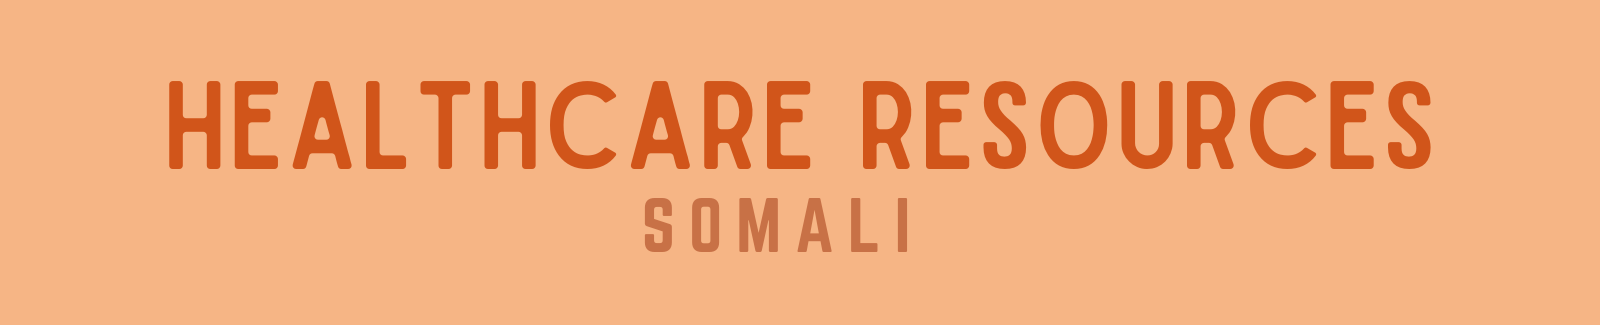 Healthcare Resources in Somali